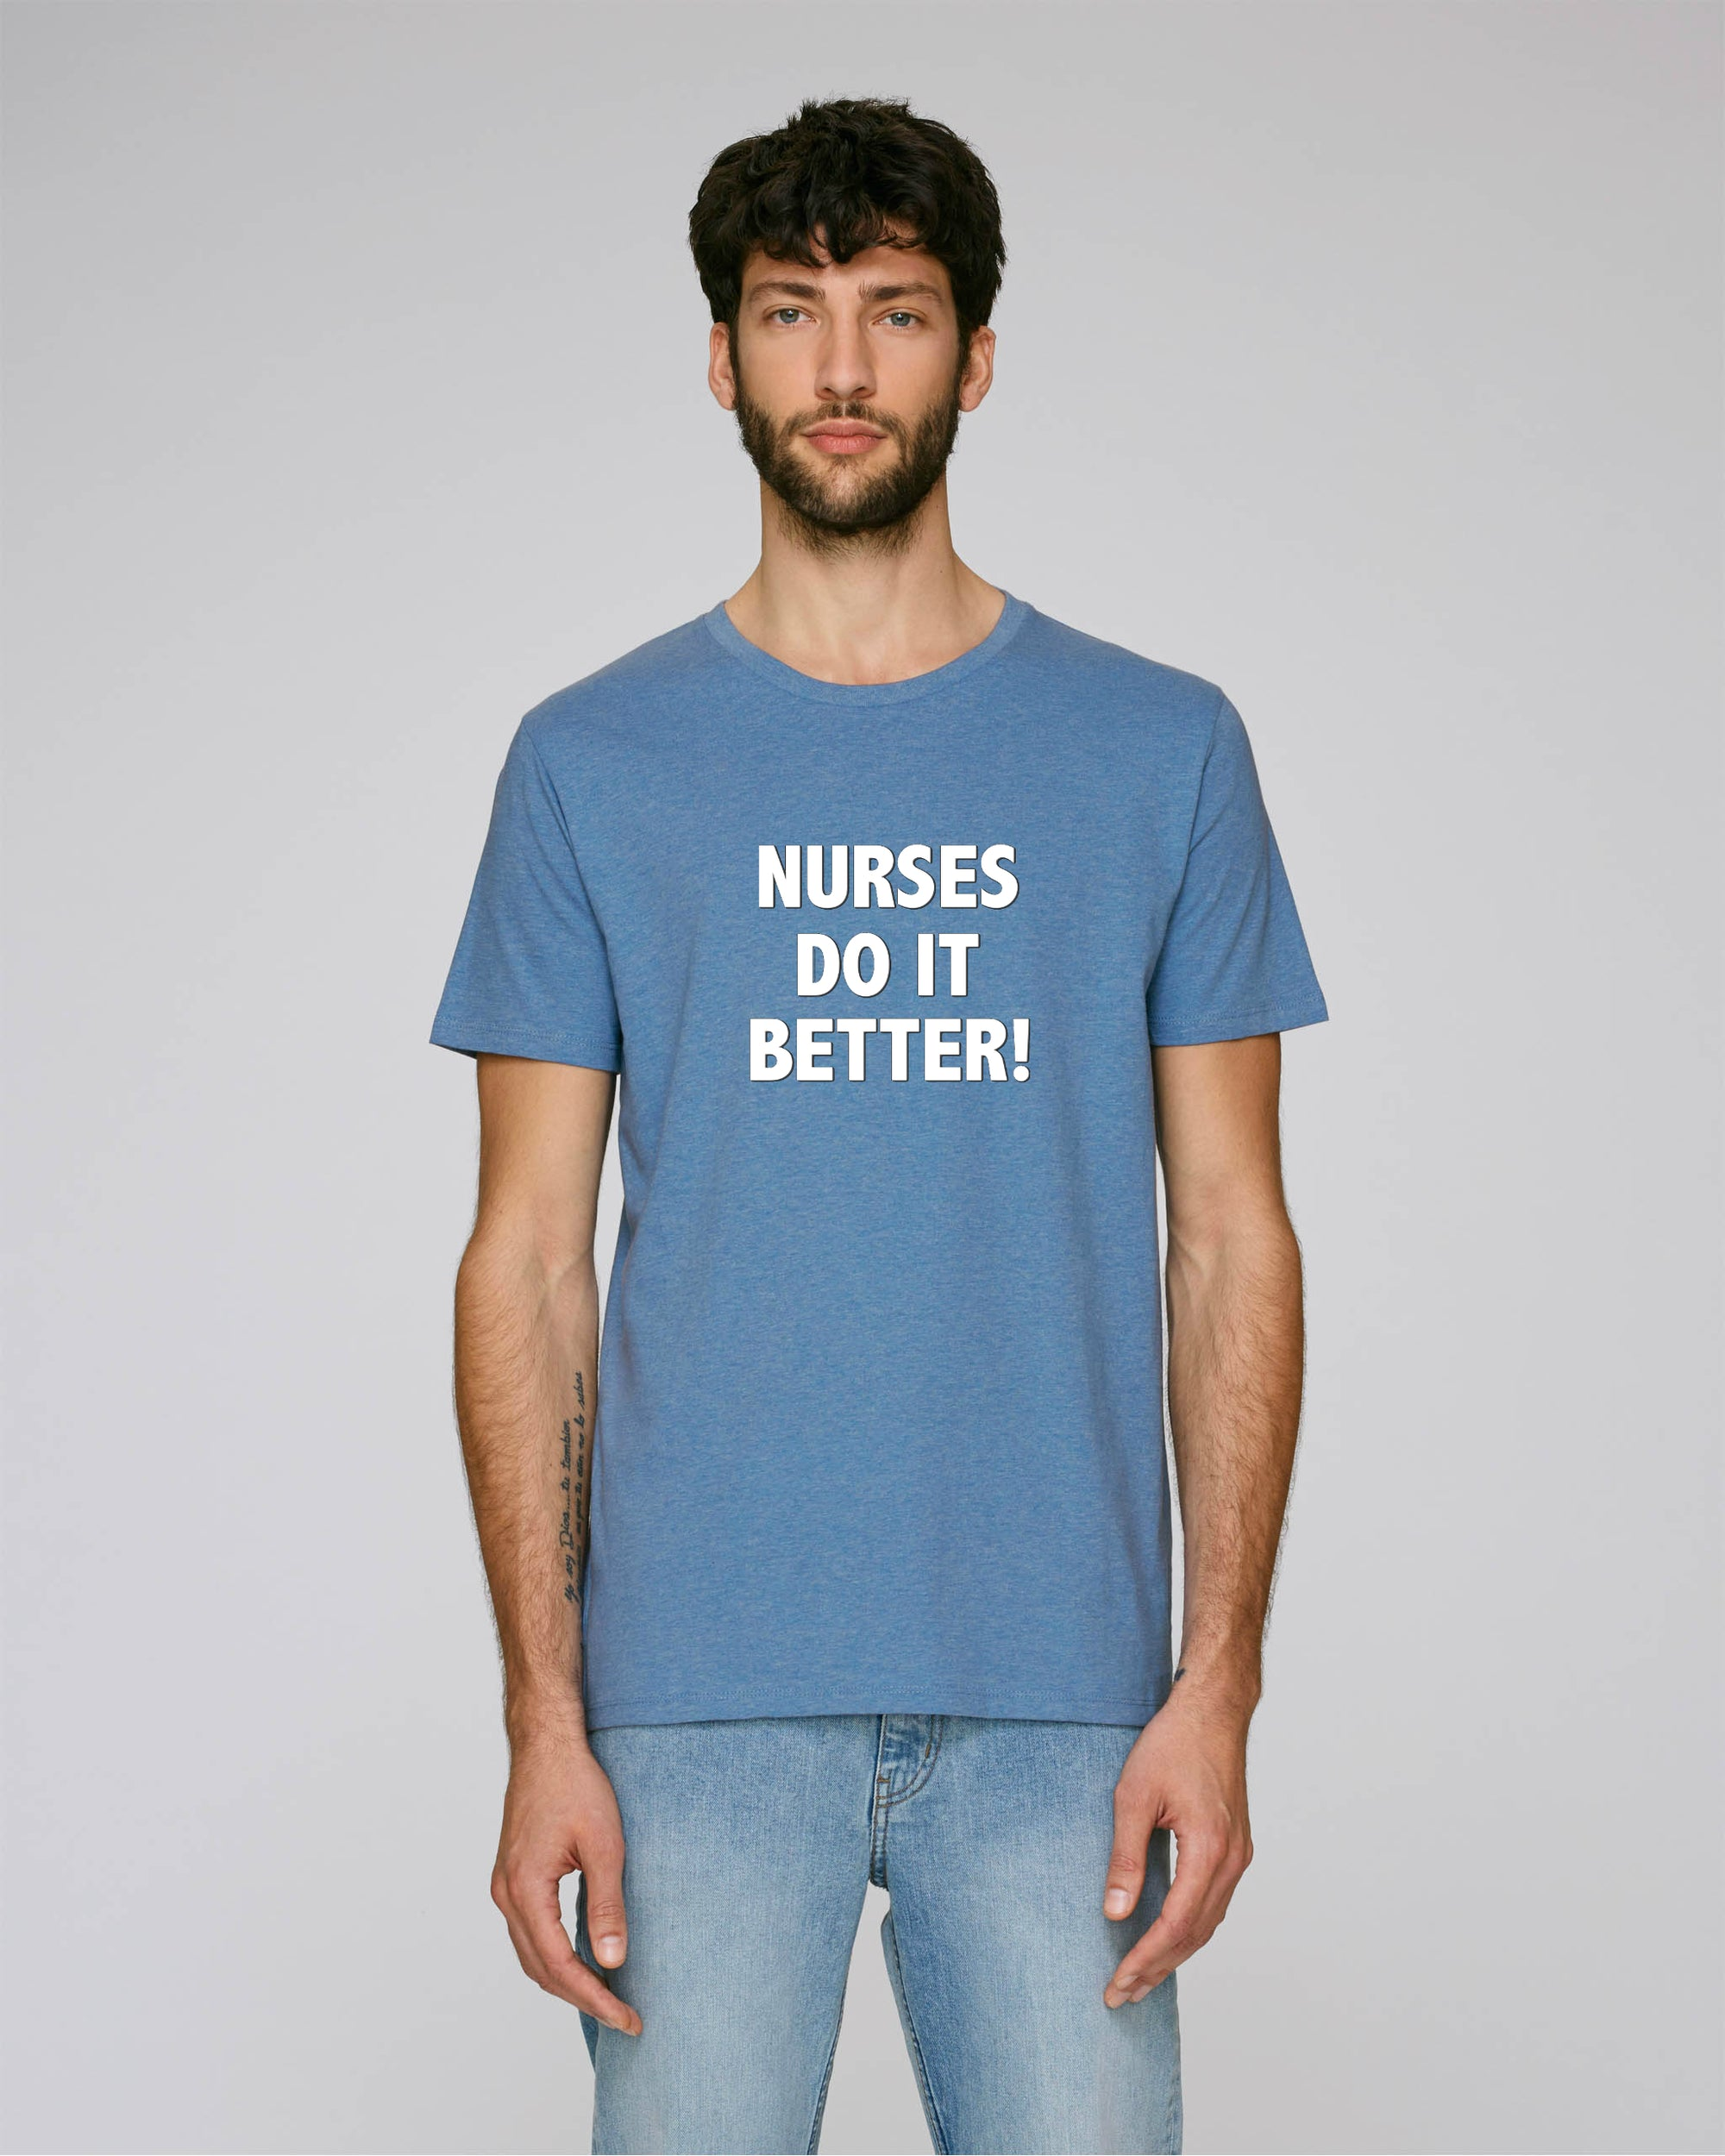 'NURSES DO IT BETTER' EMBROIDERED FITTED ORGANIC COTTON UNISEX T-SHIRT (10% donated to NHS)